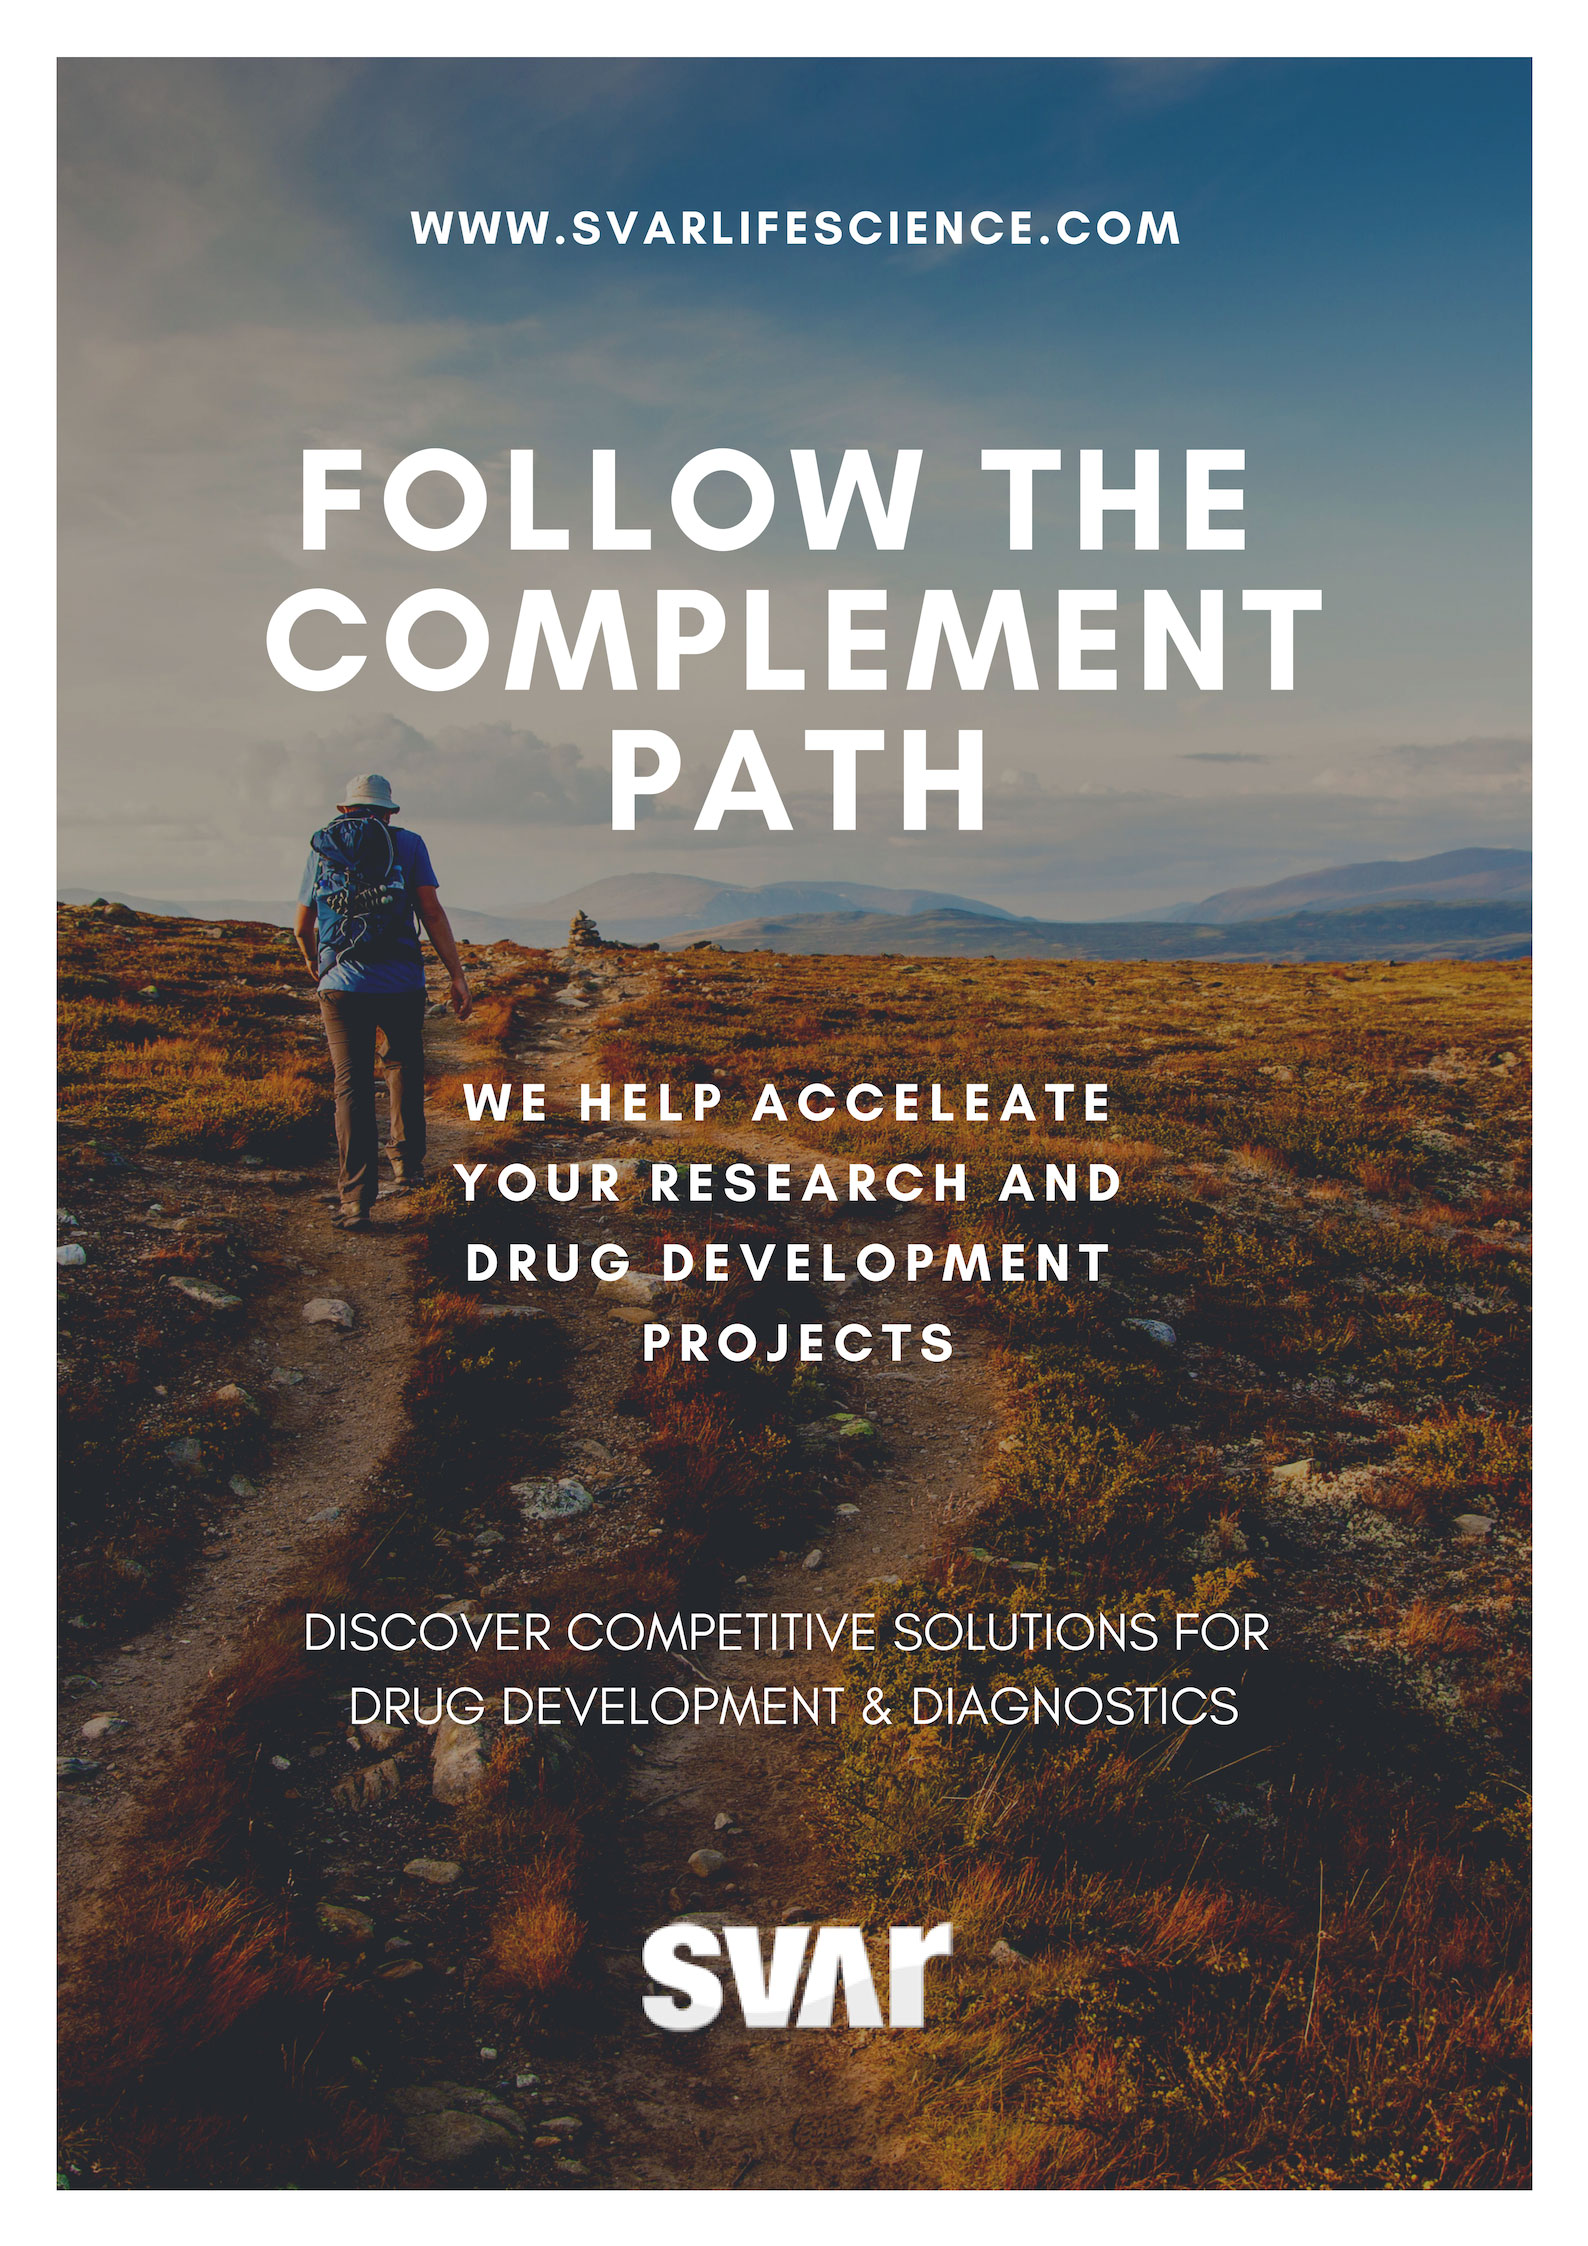 Follow-the-complement-path